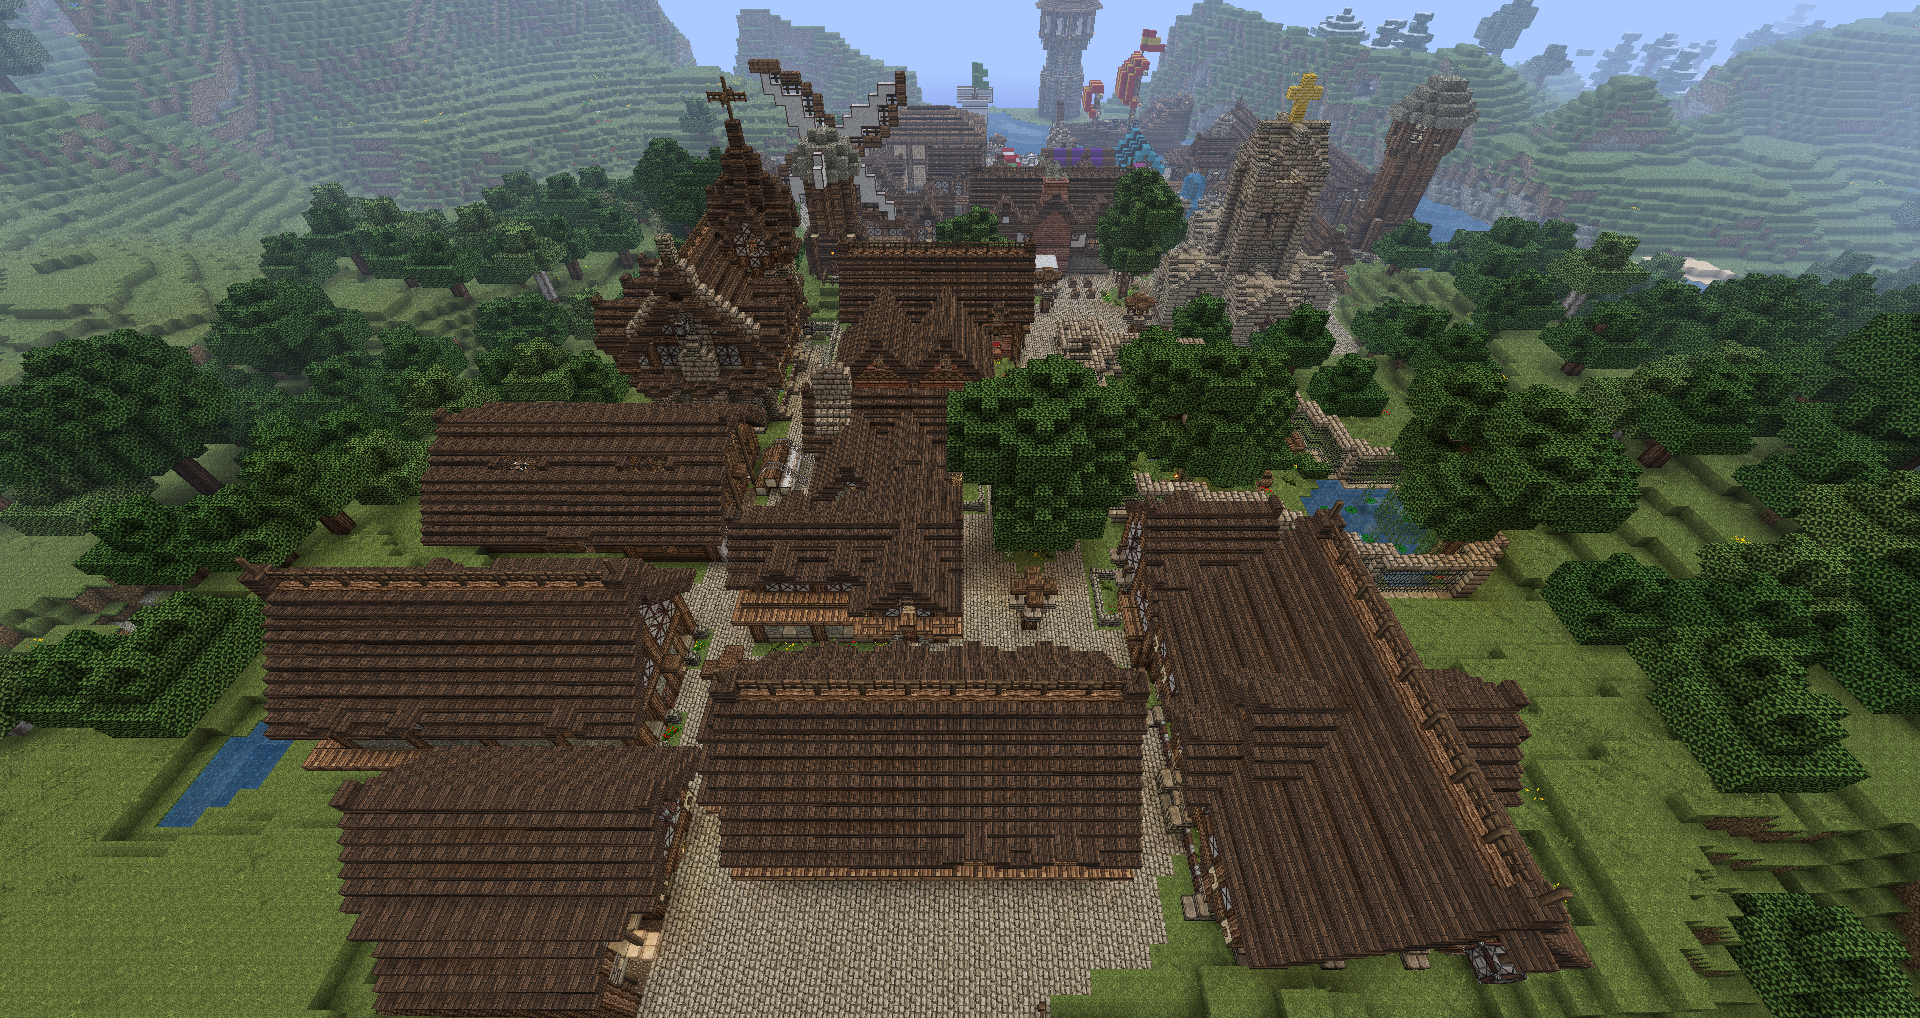 thought you guys would want a diff. view. You can also see some minor progress towards the bottom of the screenshot... I wooden wan't to live there! Only kidding that place looks pretty sweet man.